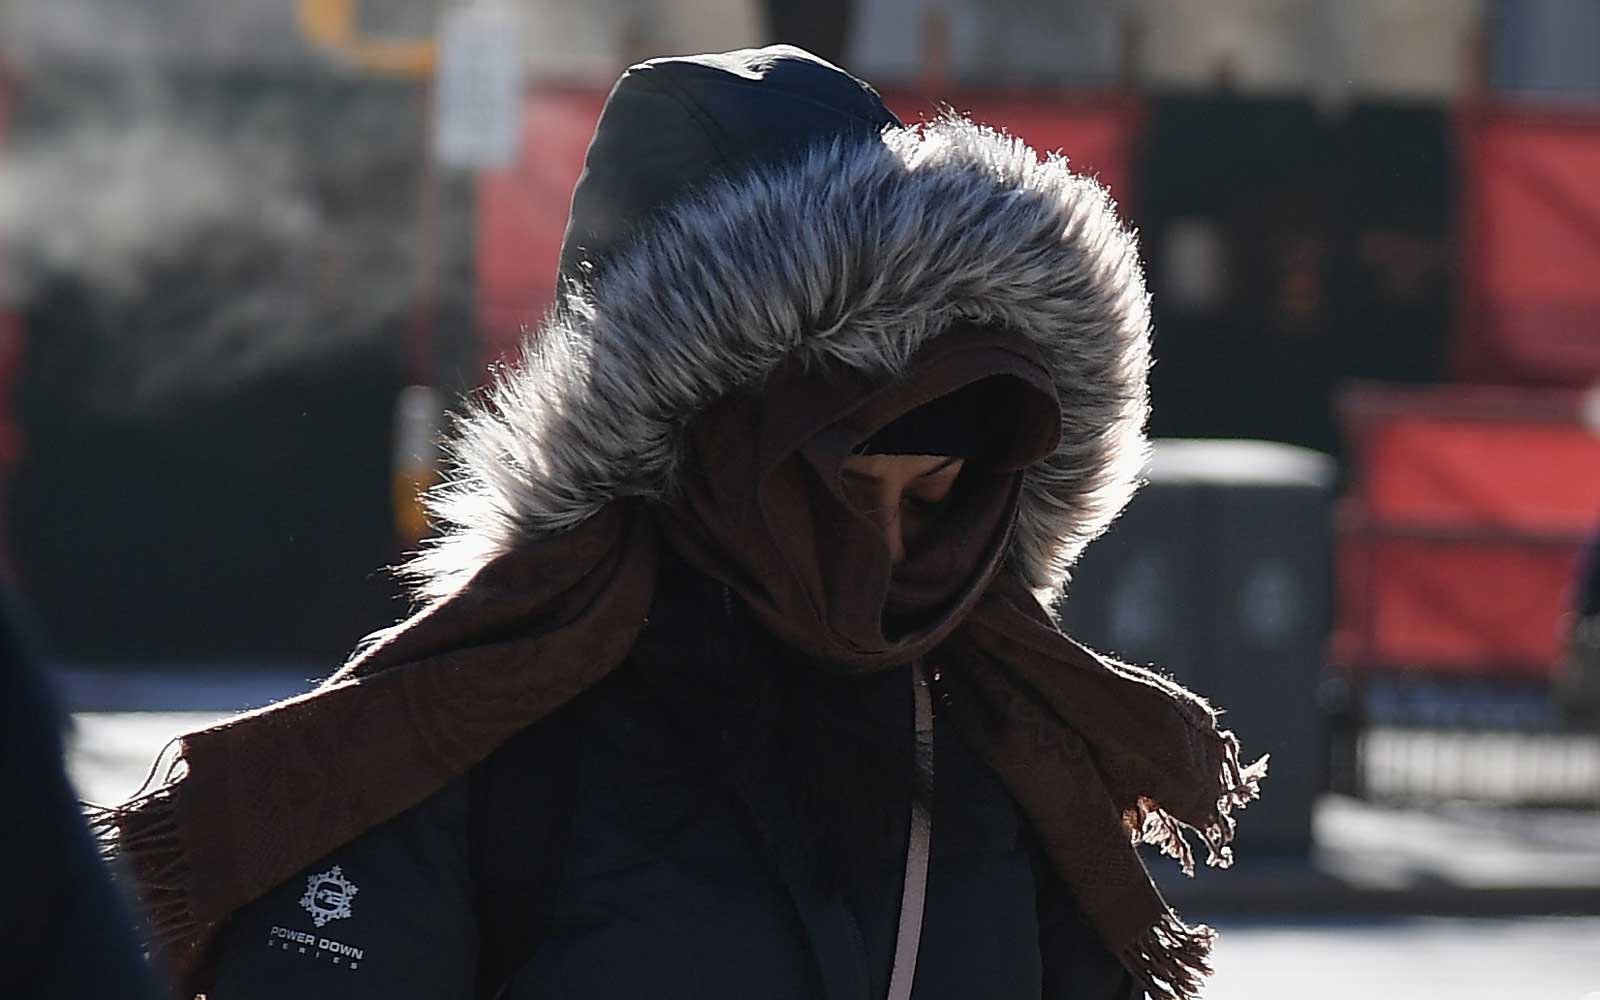 People walk through cold conditions due to the polar vortex.